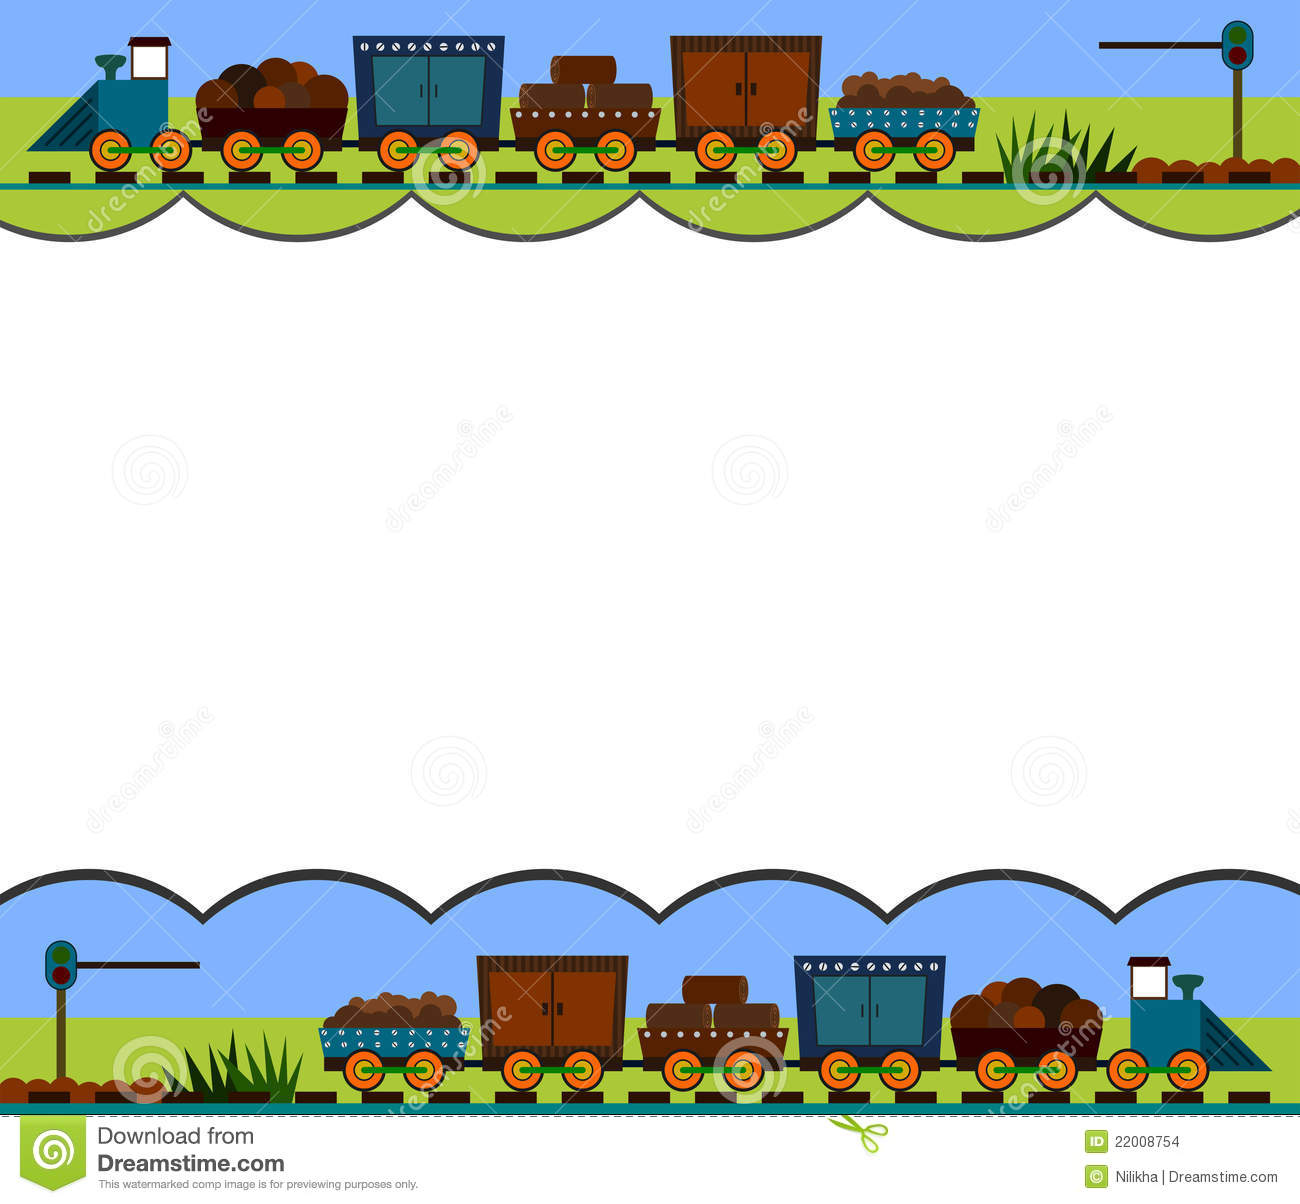 Train border stock illustration. Illustration of ...